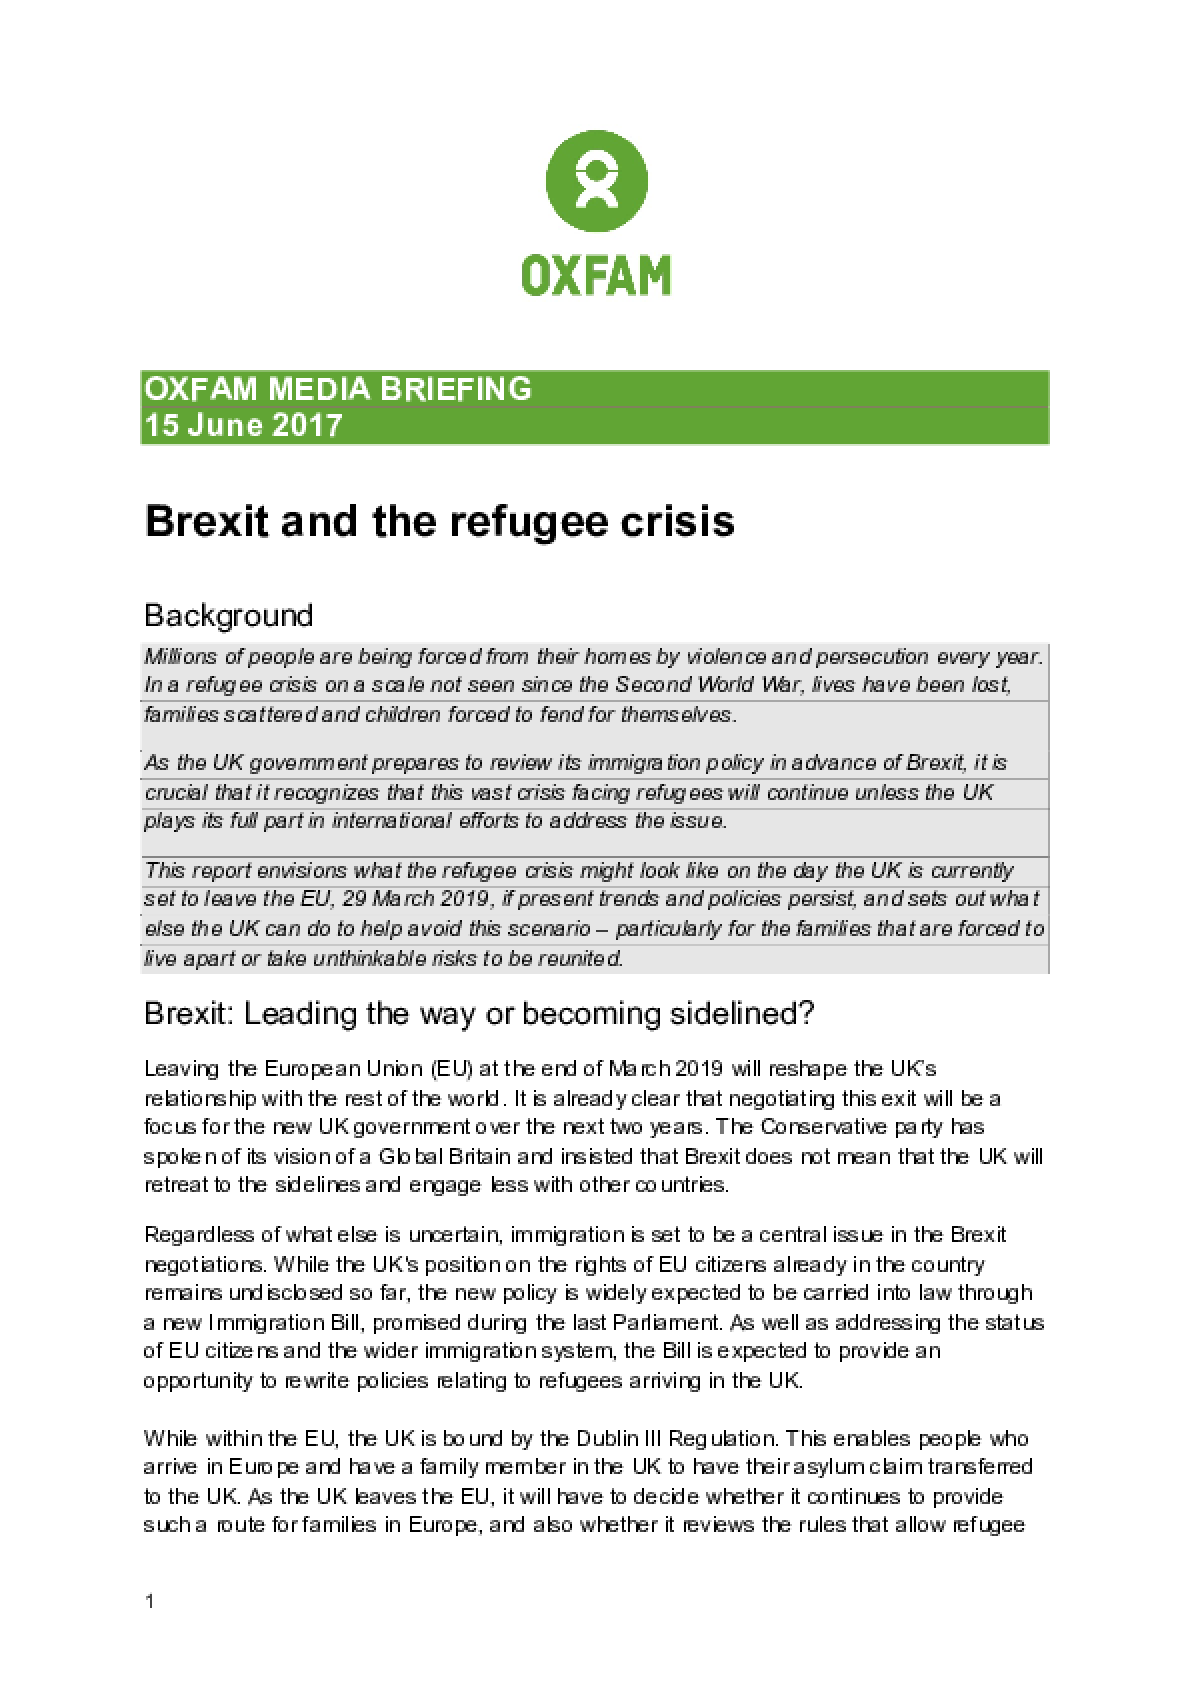 Brexit and the Refugee Crisis